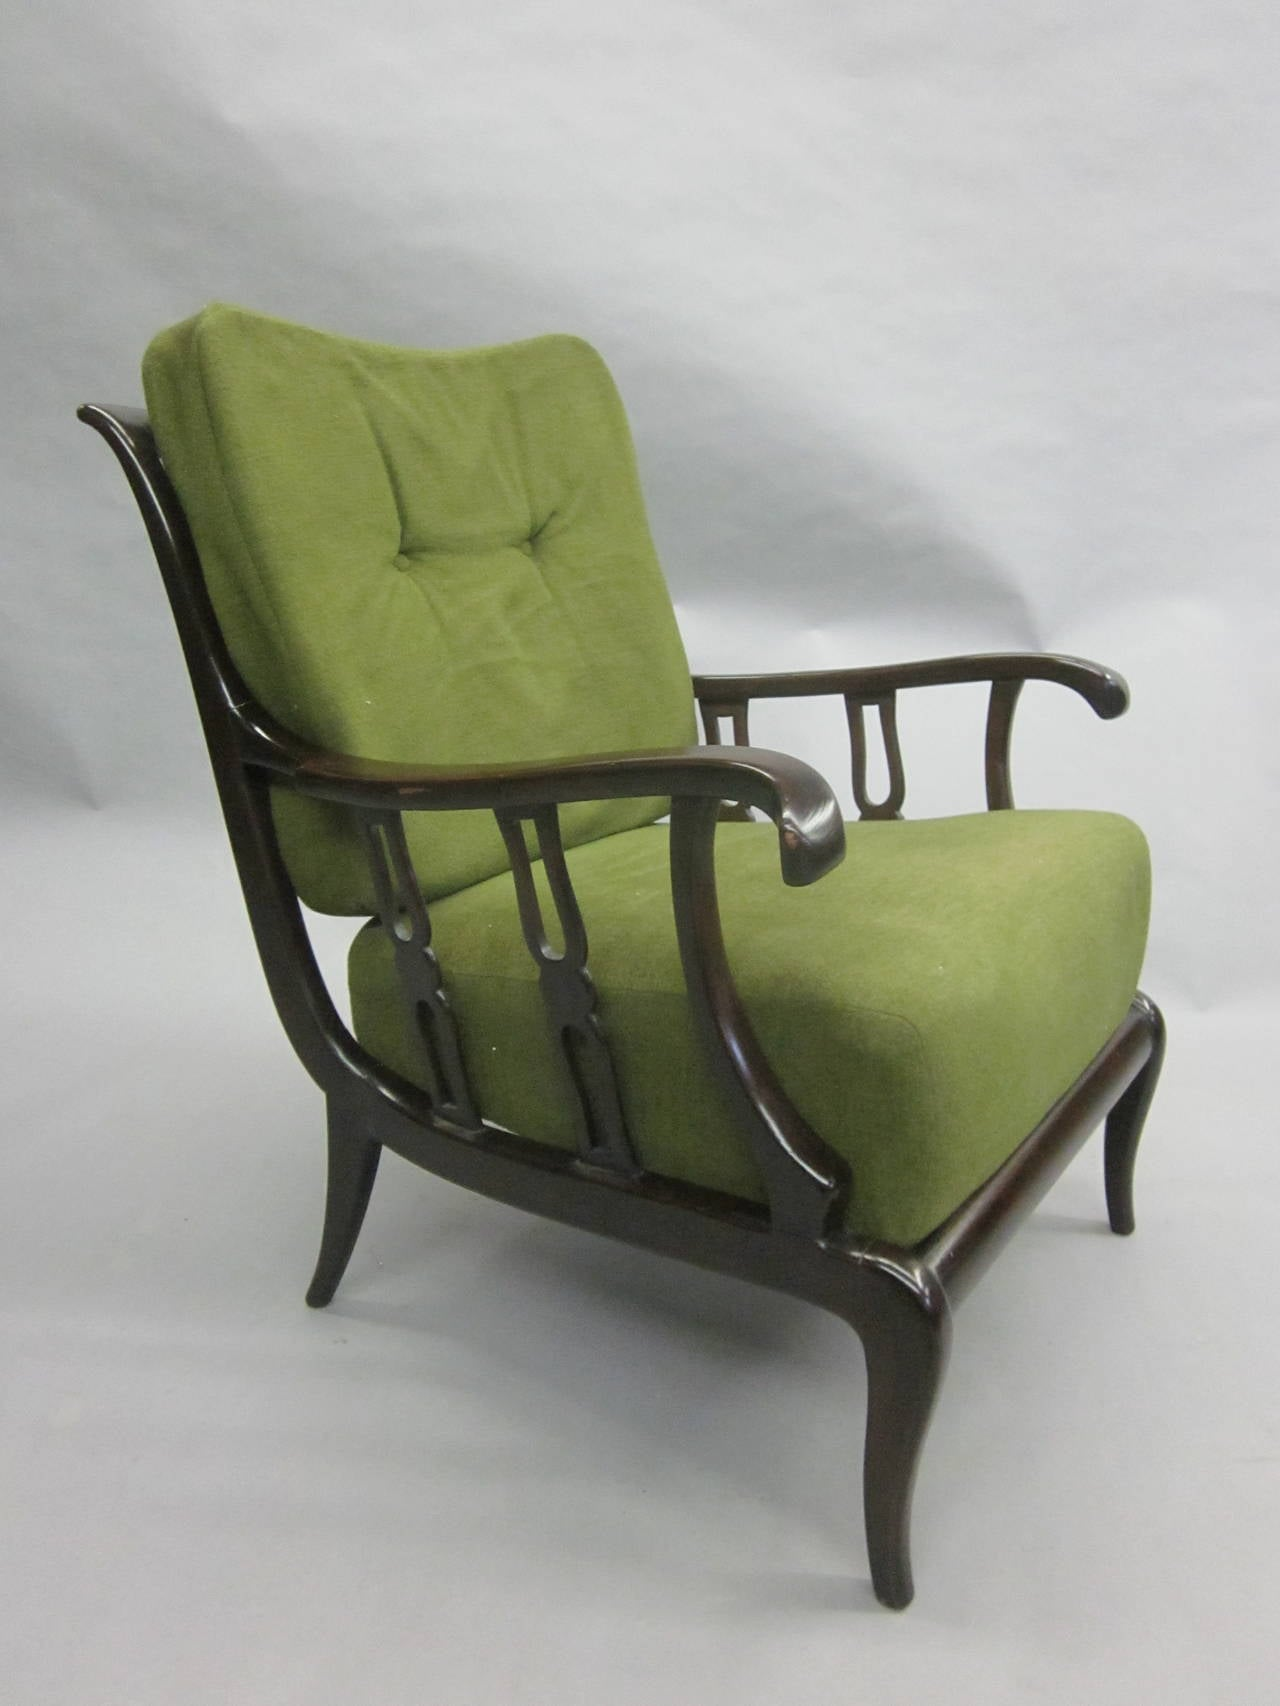 An exceptional pair of Italian 1940s lounge chairs / armchairs / club chairs by Paolo Buffa that expresses the poetry of his work featuring pure modern neoclassical frames, splayed armrests, saber legs and singular carved arm and back